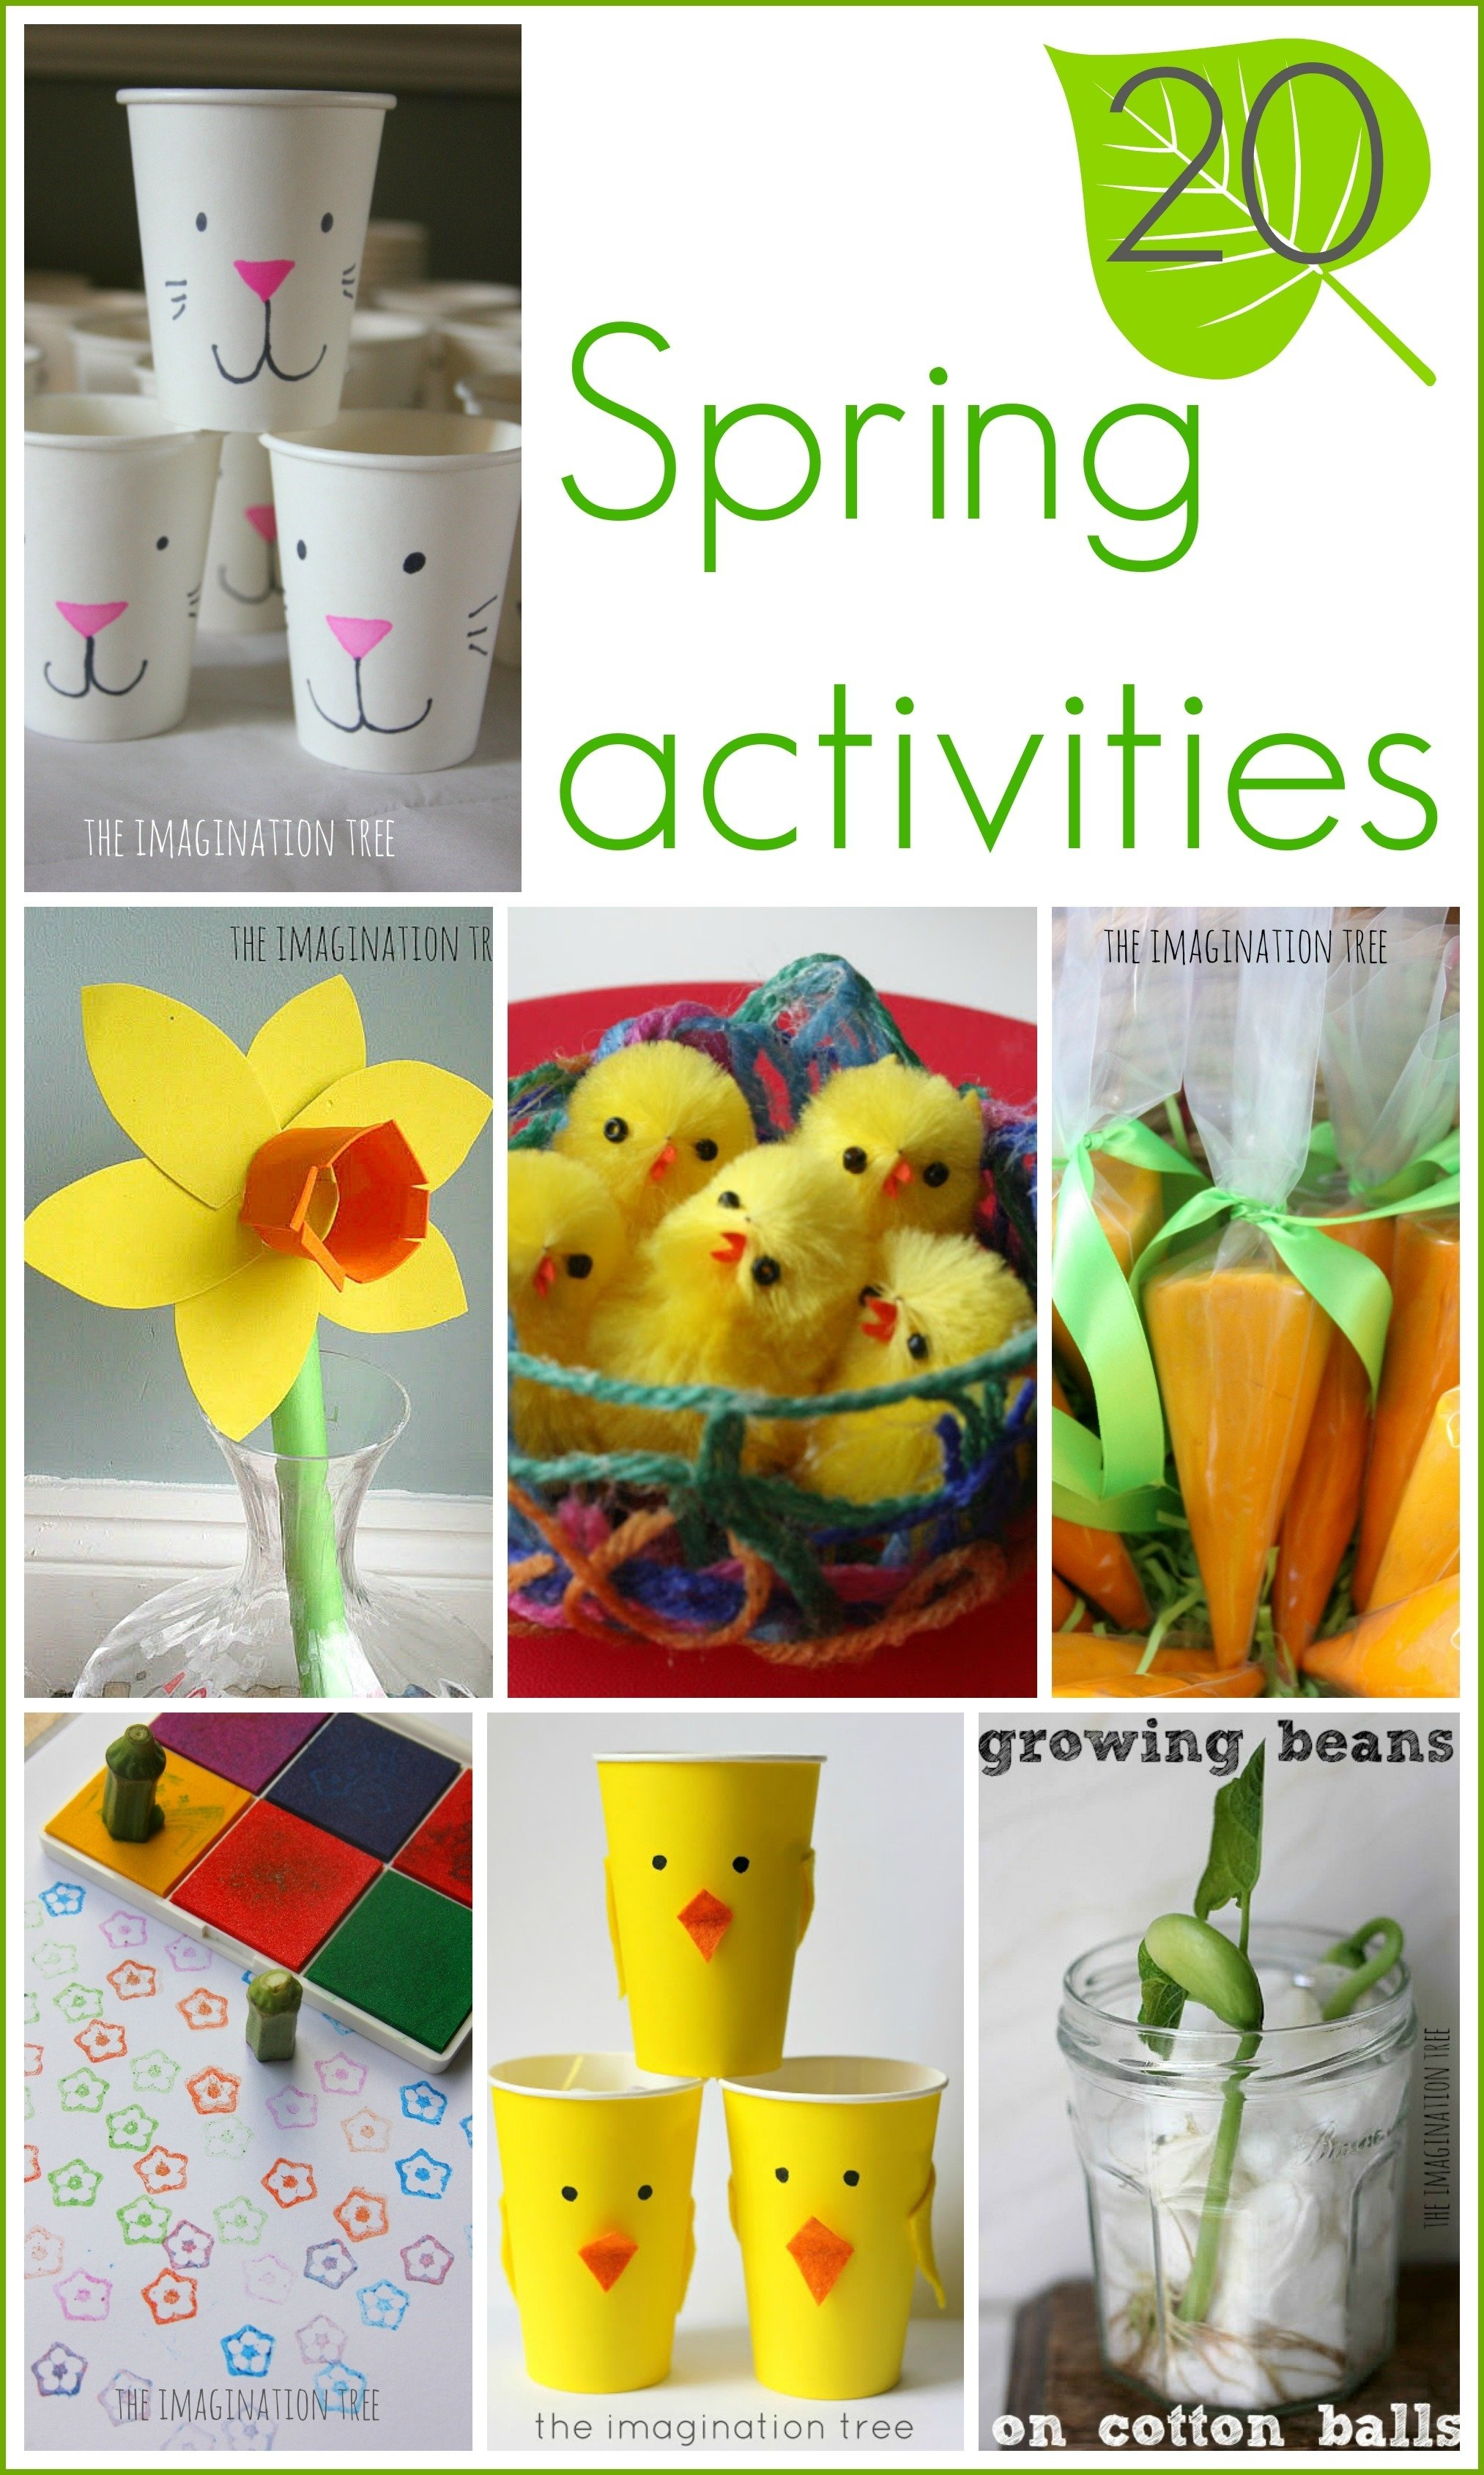 10 Most Recommended Spring Craft Ideas For Preschoolers 15 spring activities for kids the imagination tree 1 2021